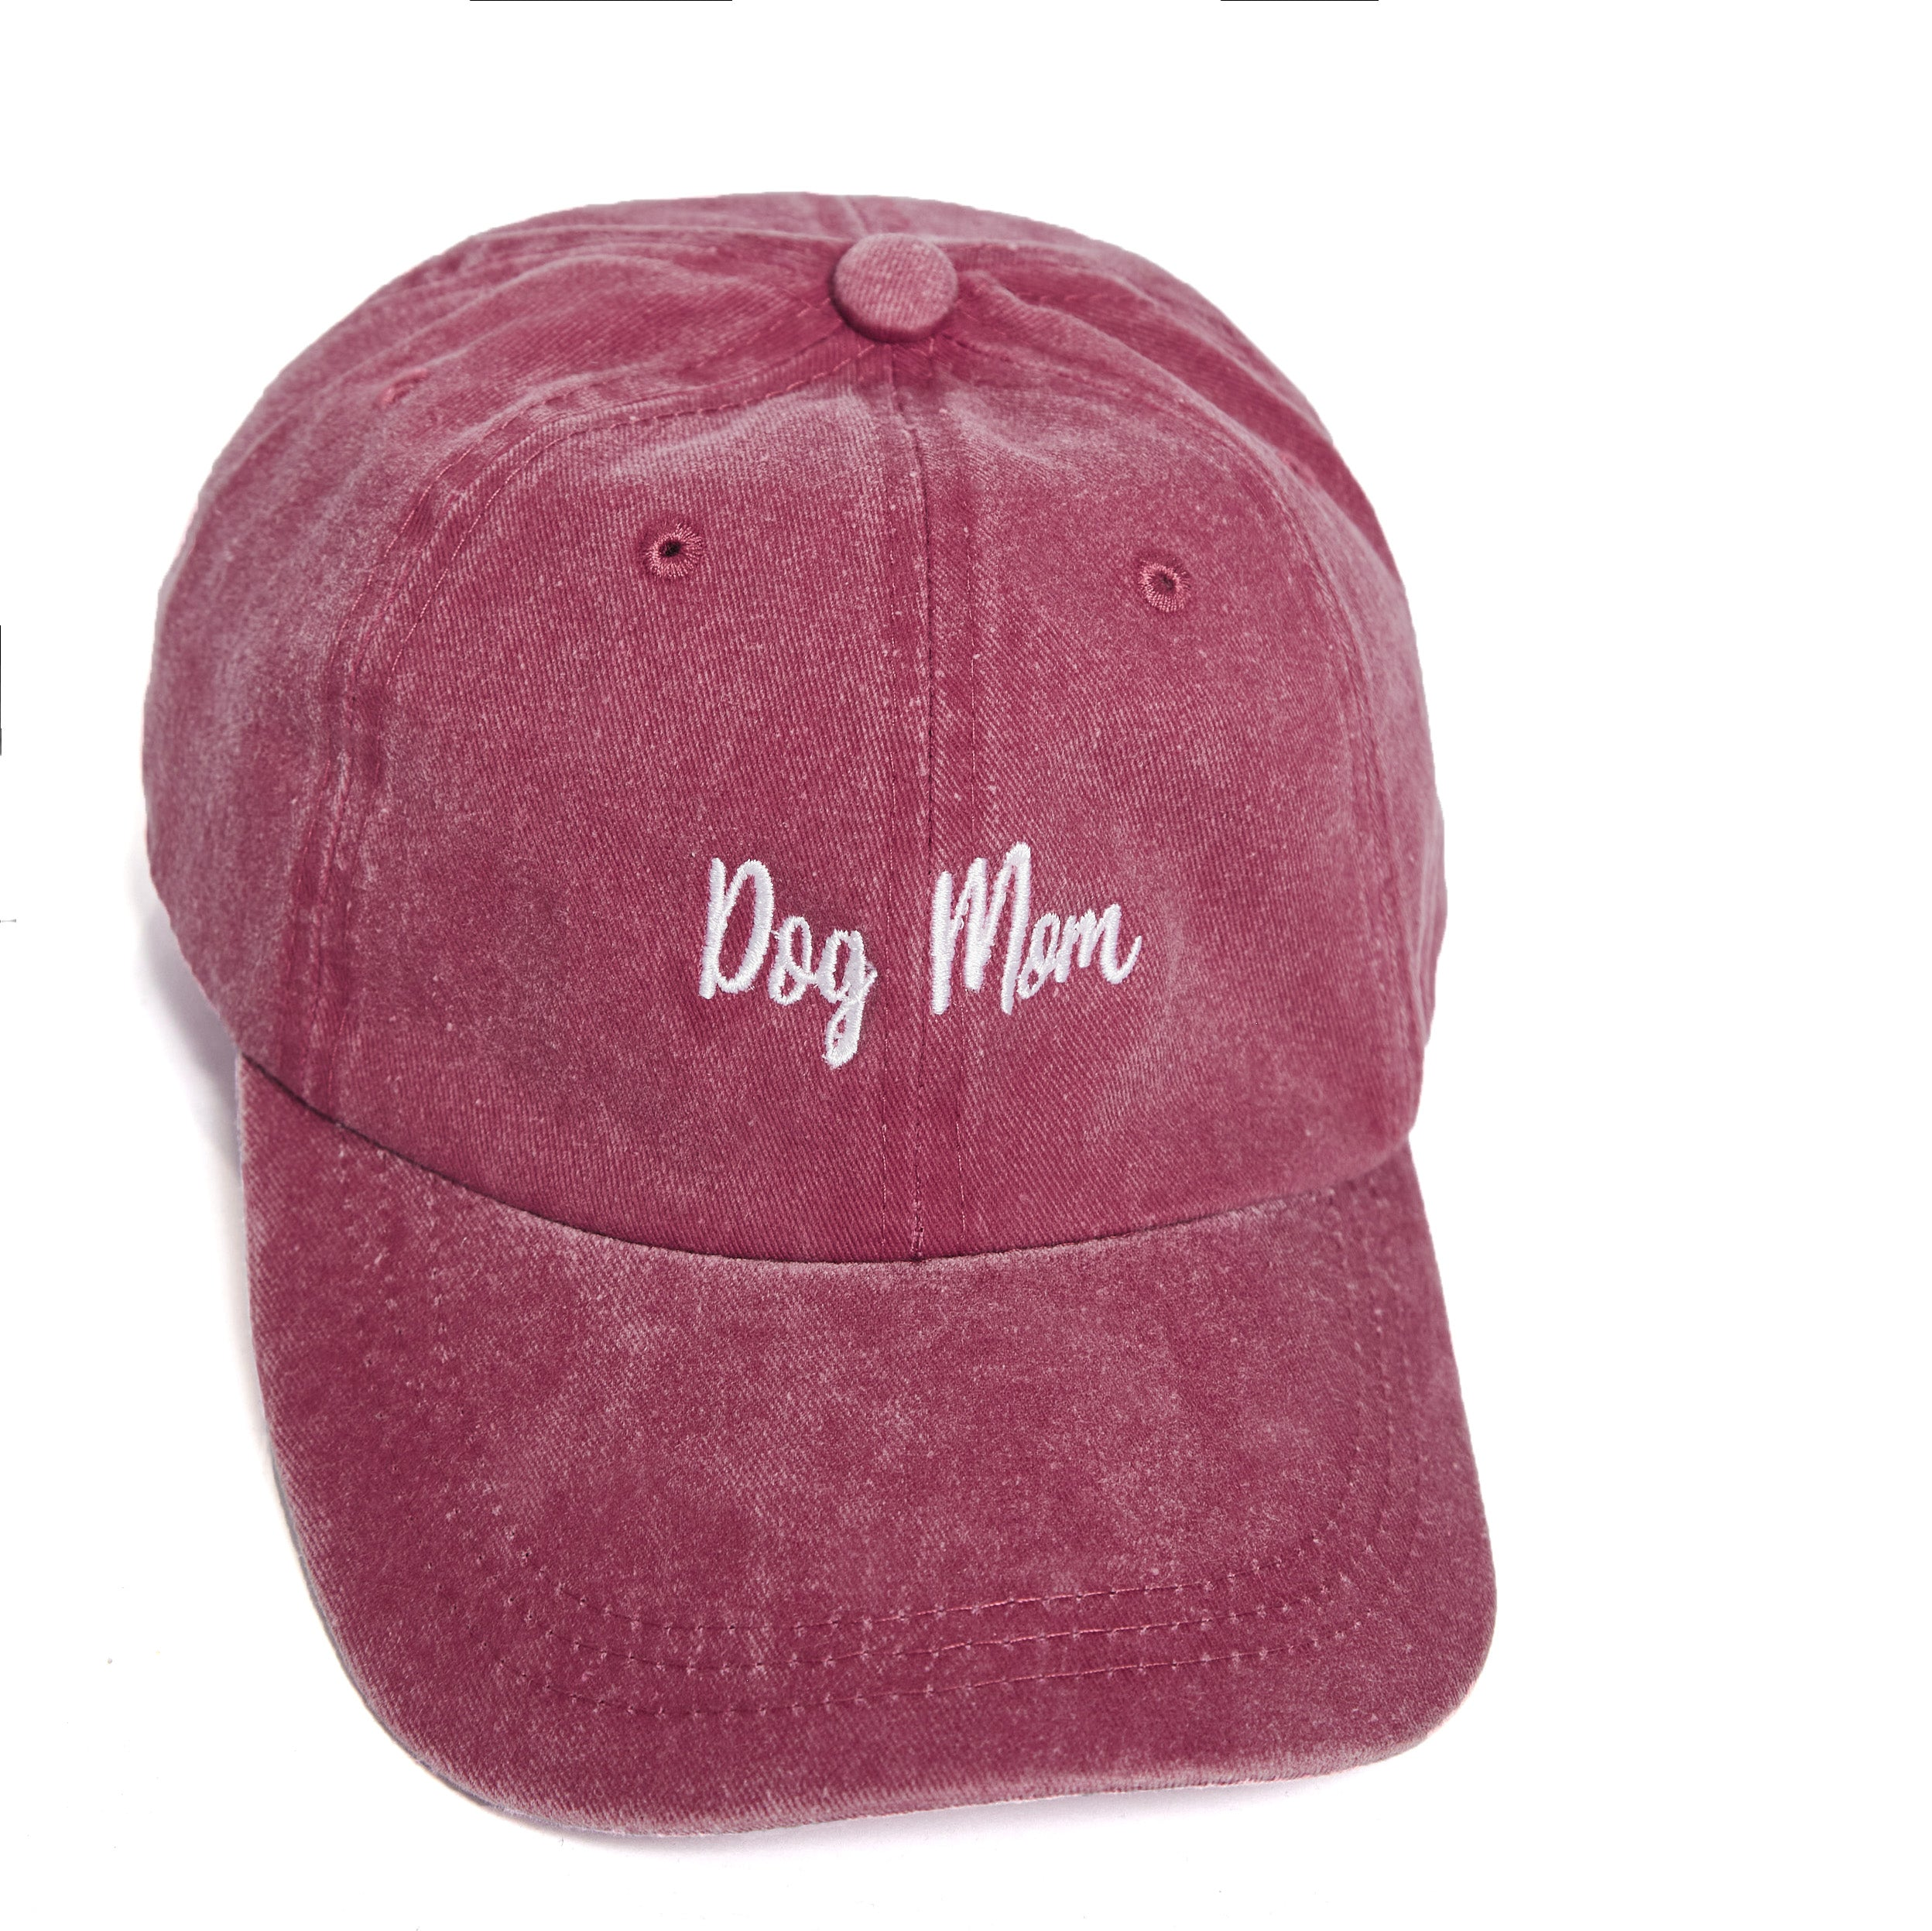 Dog Mom Pigment Washed Cotton Baseball Cap